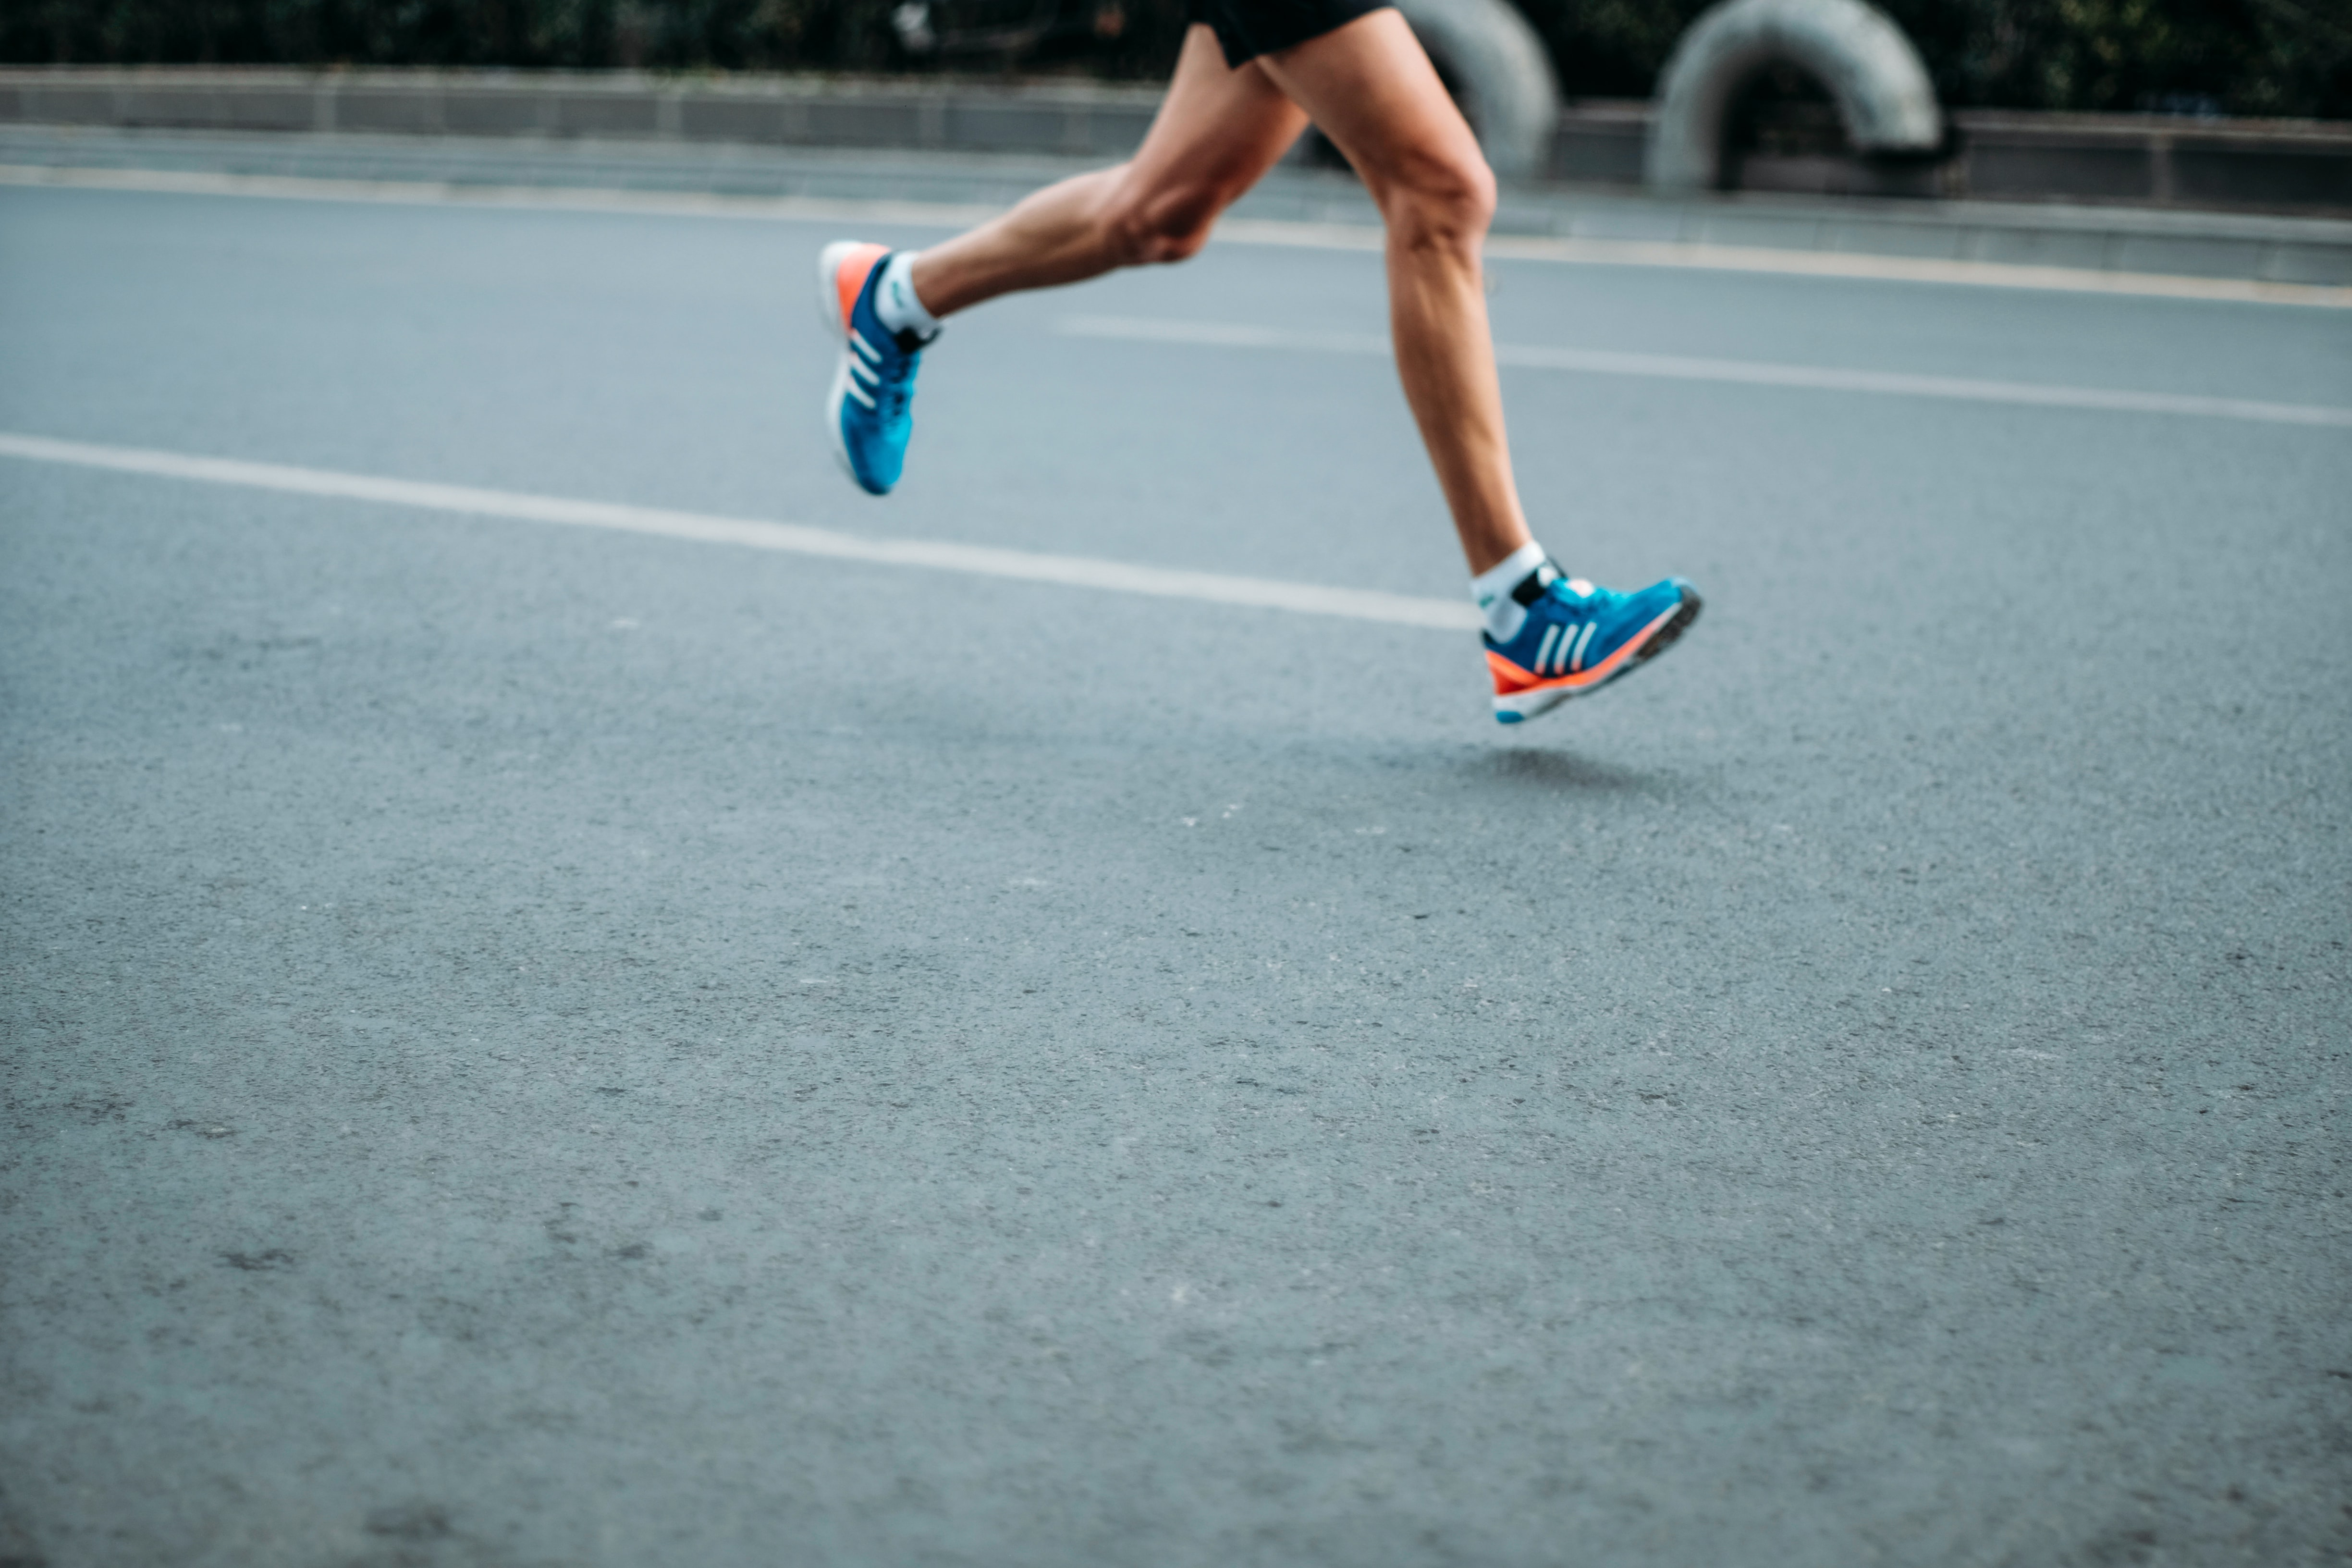 How To Manage Shin Splints A Guide For Runners Charlotte Softly Sports Massage Therapist Brighton